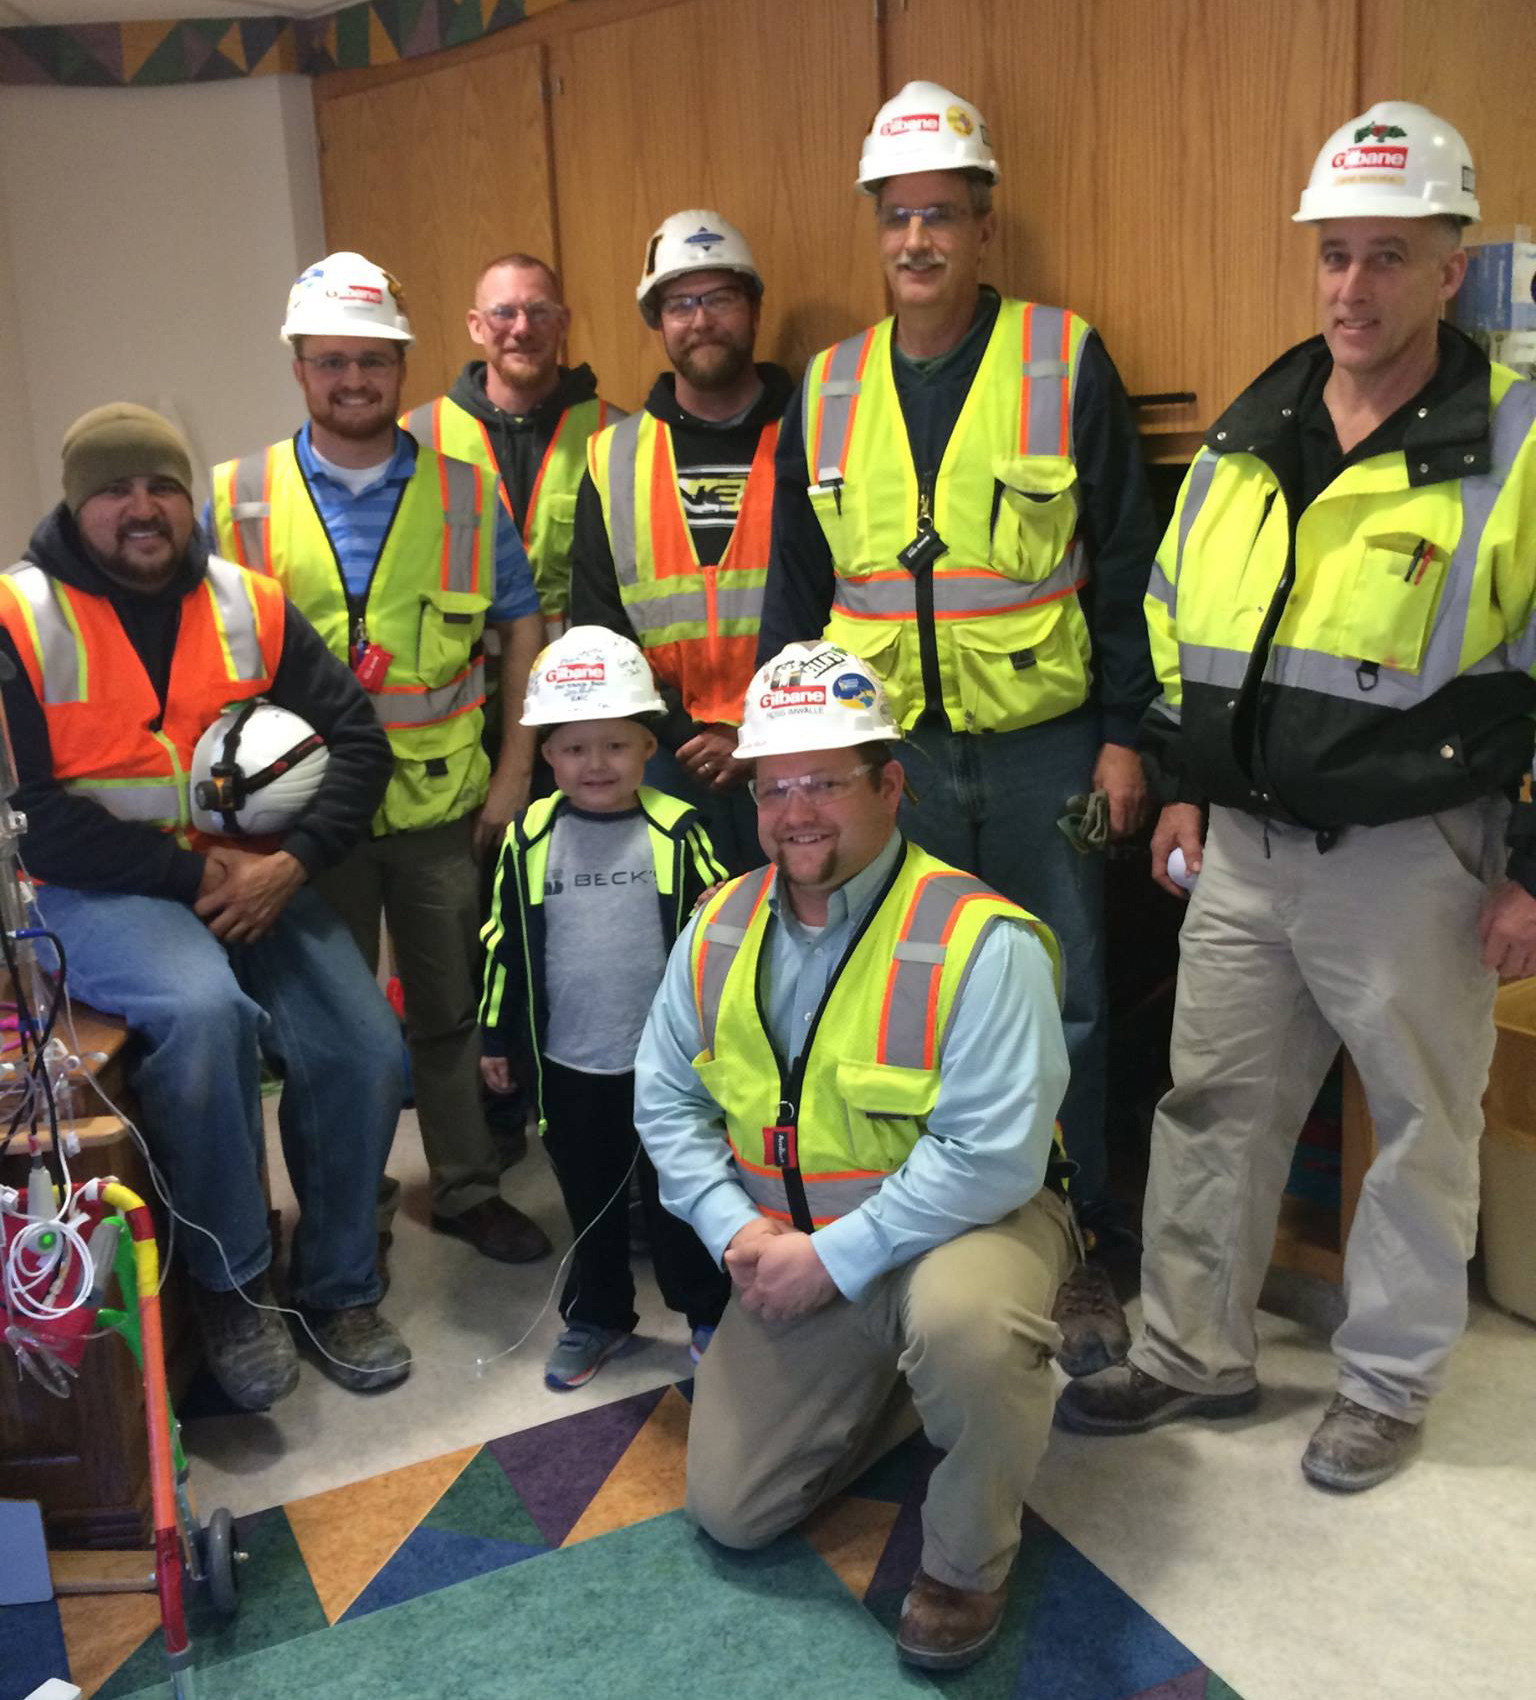 Kale gets a visit from the construction workers.